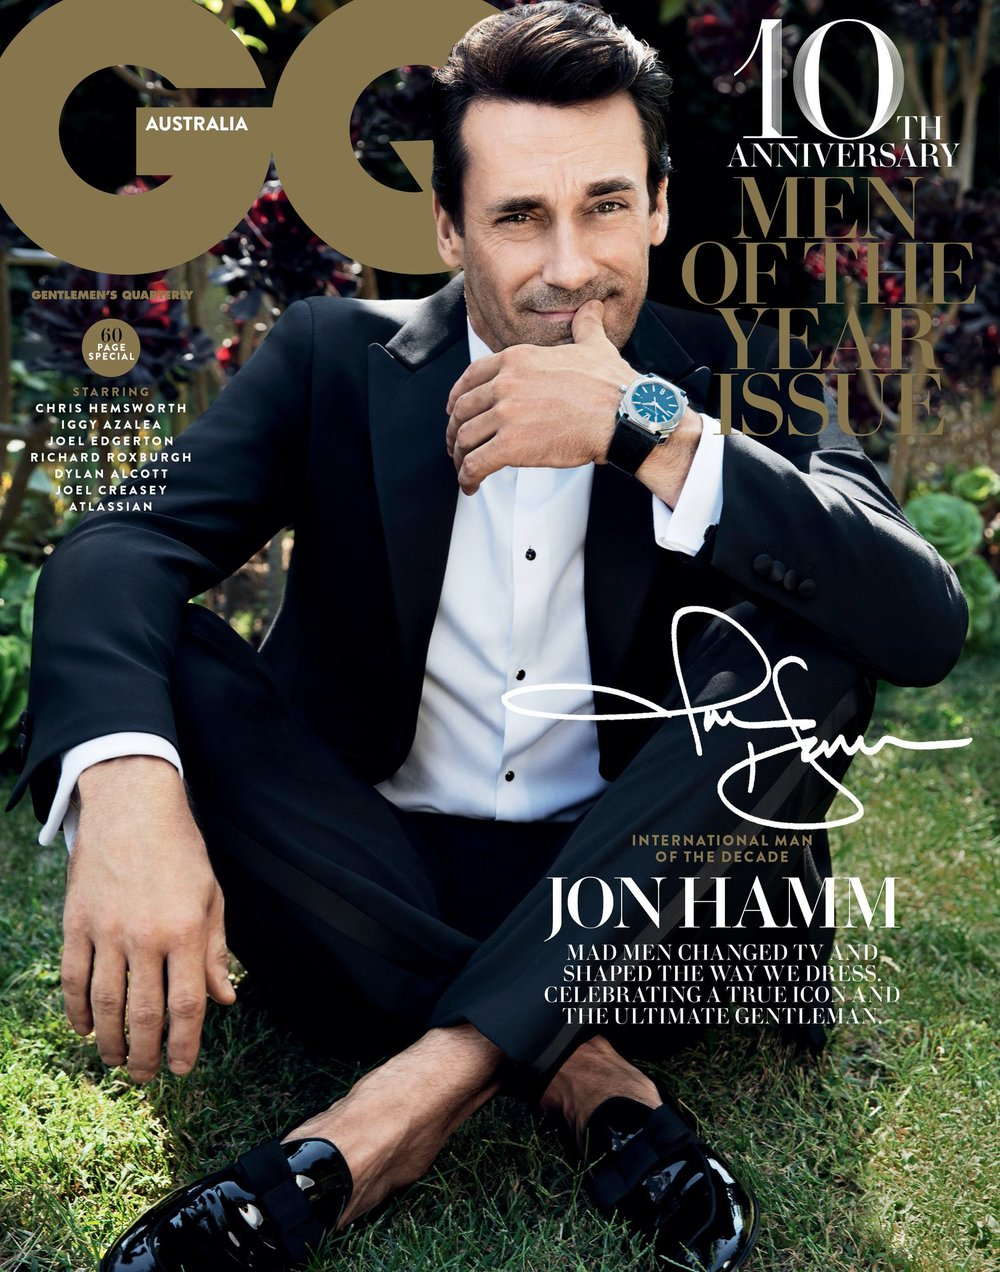 GQ Australia, Dec-Jan 2017, cover story